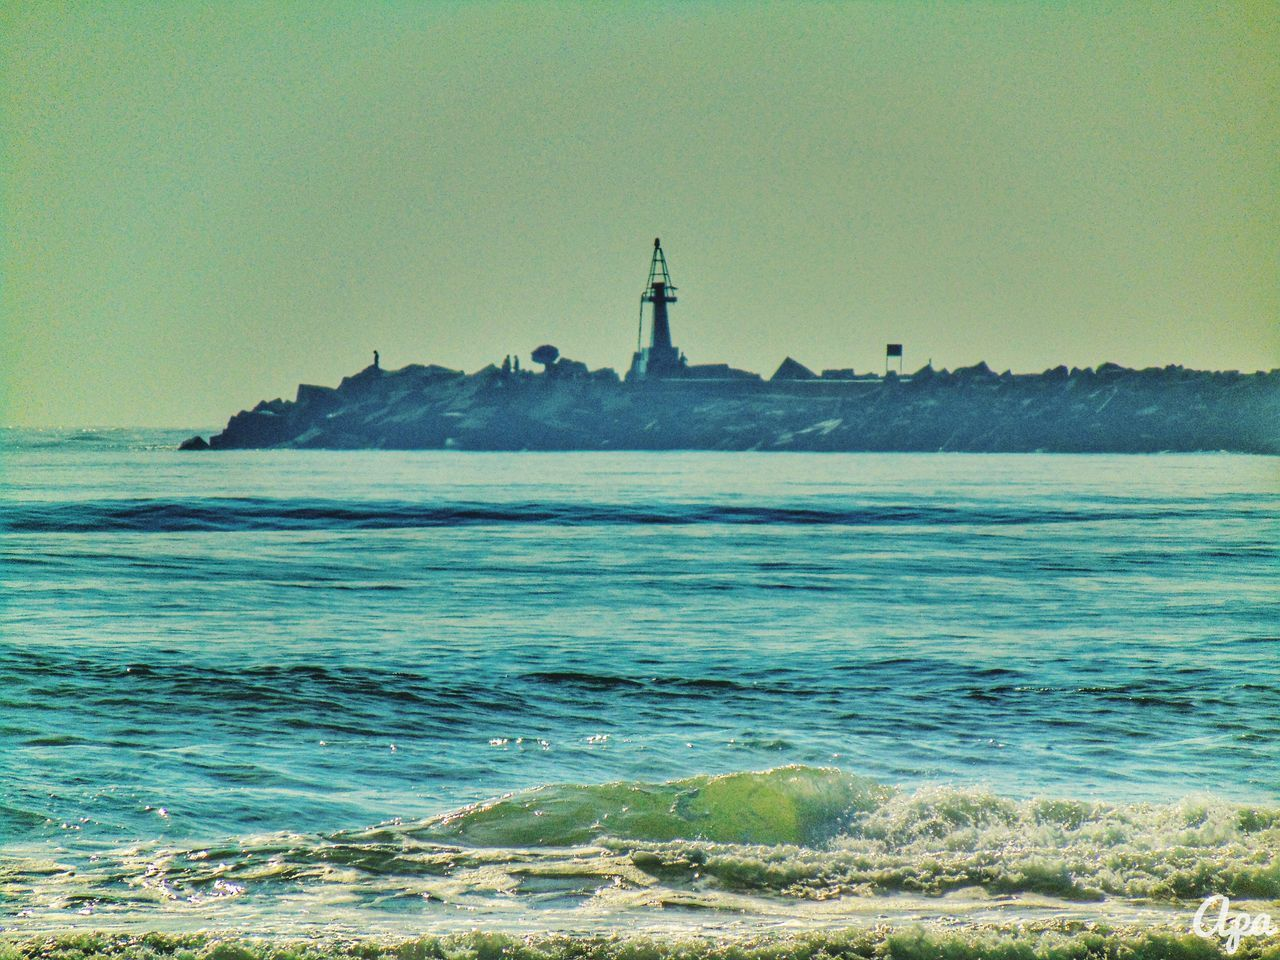 sea, lighthouse, water, nature, travel destinations, tranquility, outdoors, sky, horizon over water, scenics, no people, beauty in nature, clear sky, day, beach, statue, architecture, wave